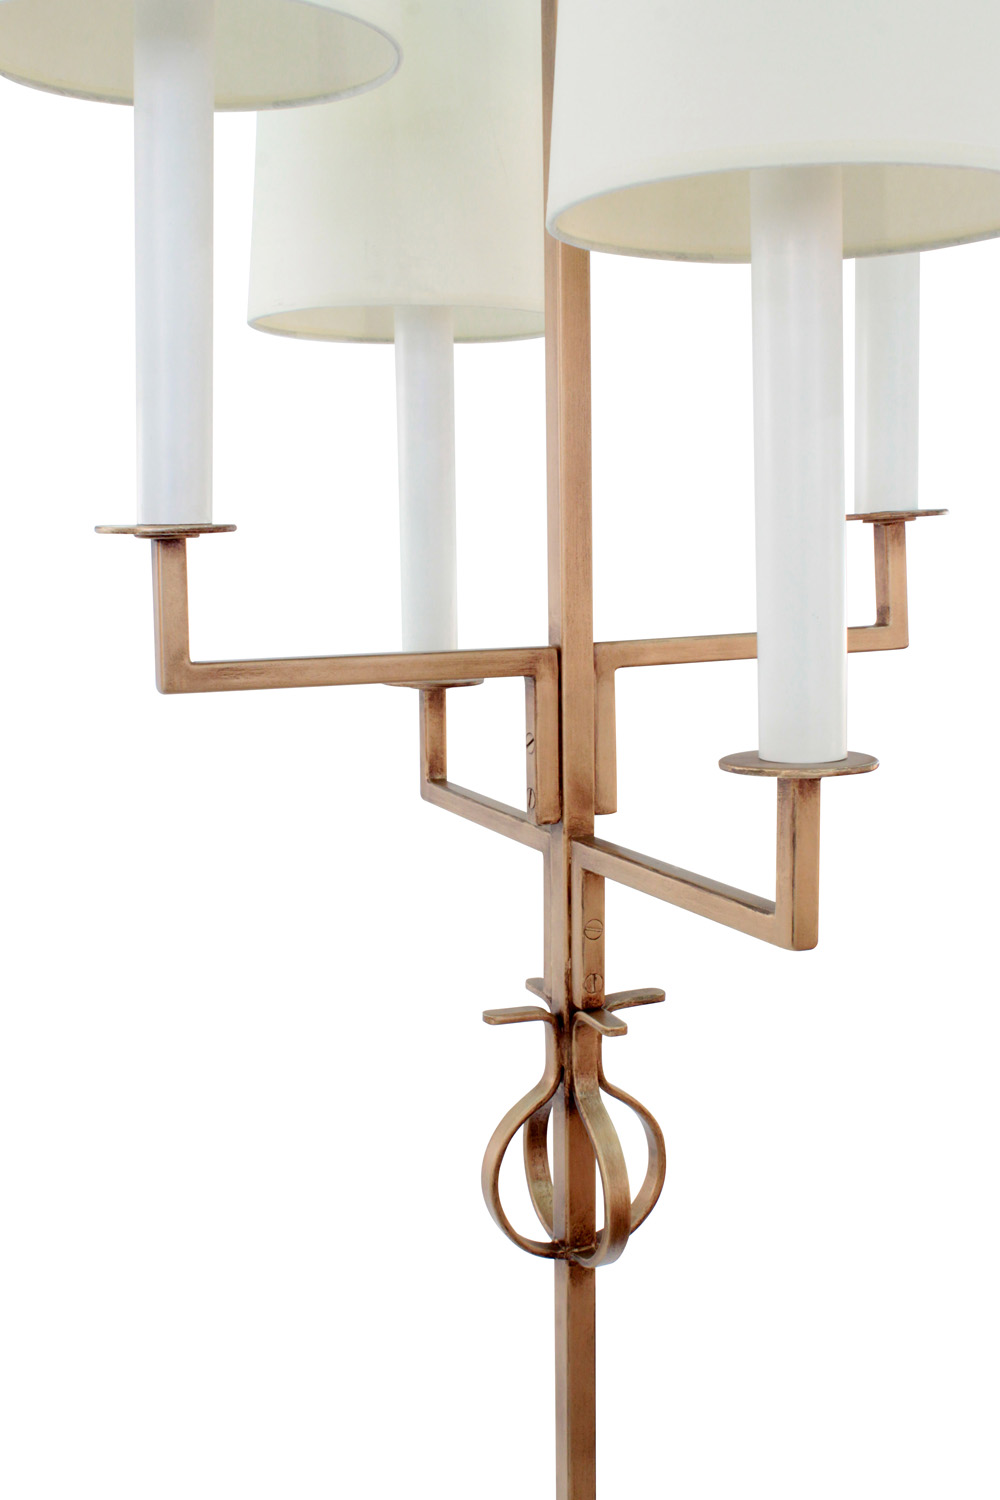 Parzinger 85 4light bronze floorlamp65 detal1 hires.jpg